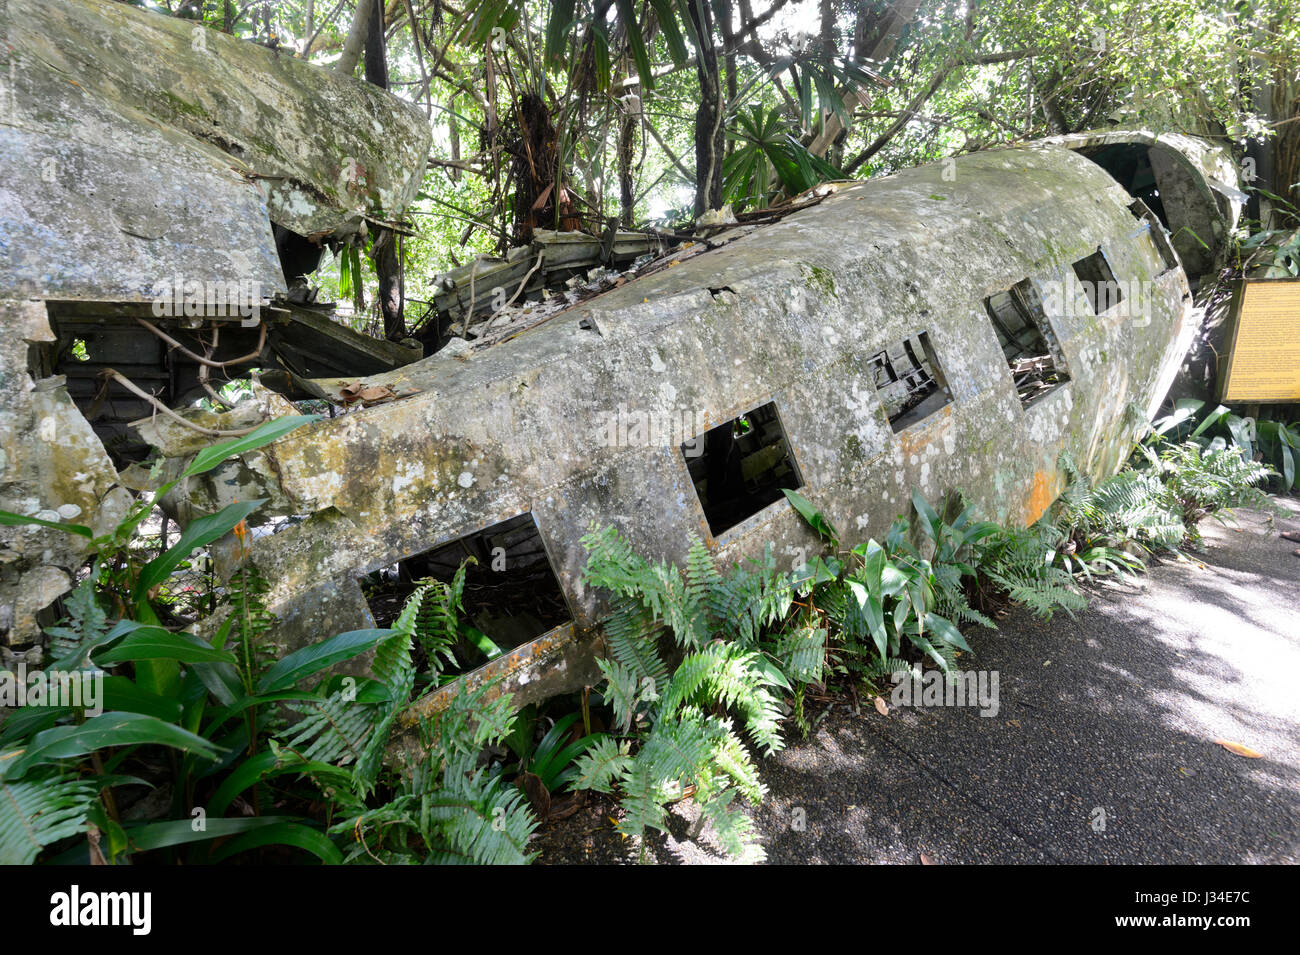 wreck-of-a-c-47-dl-a-military-version-of